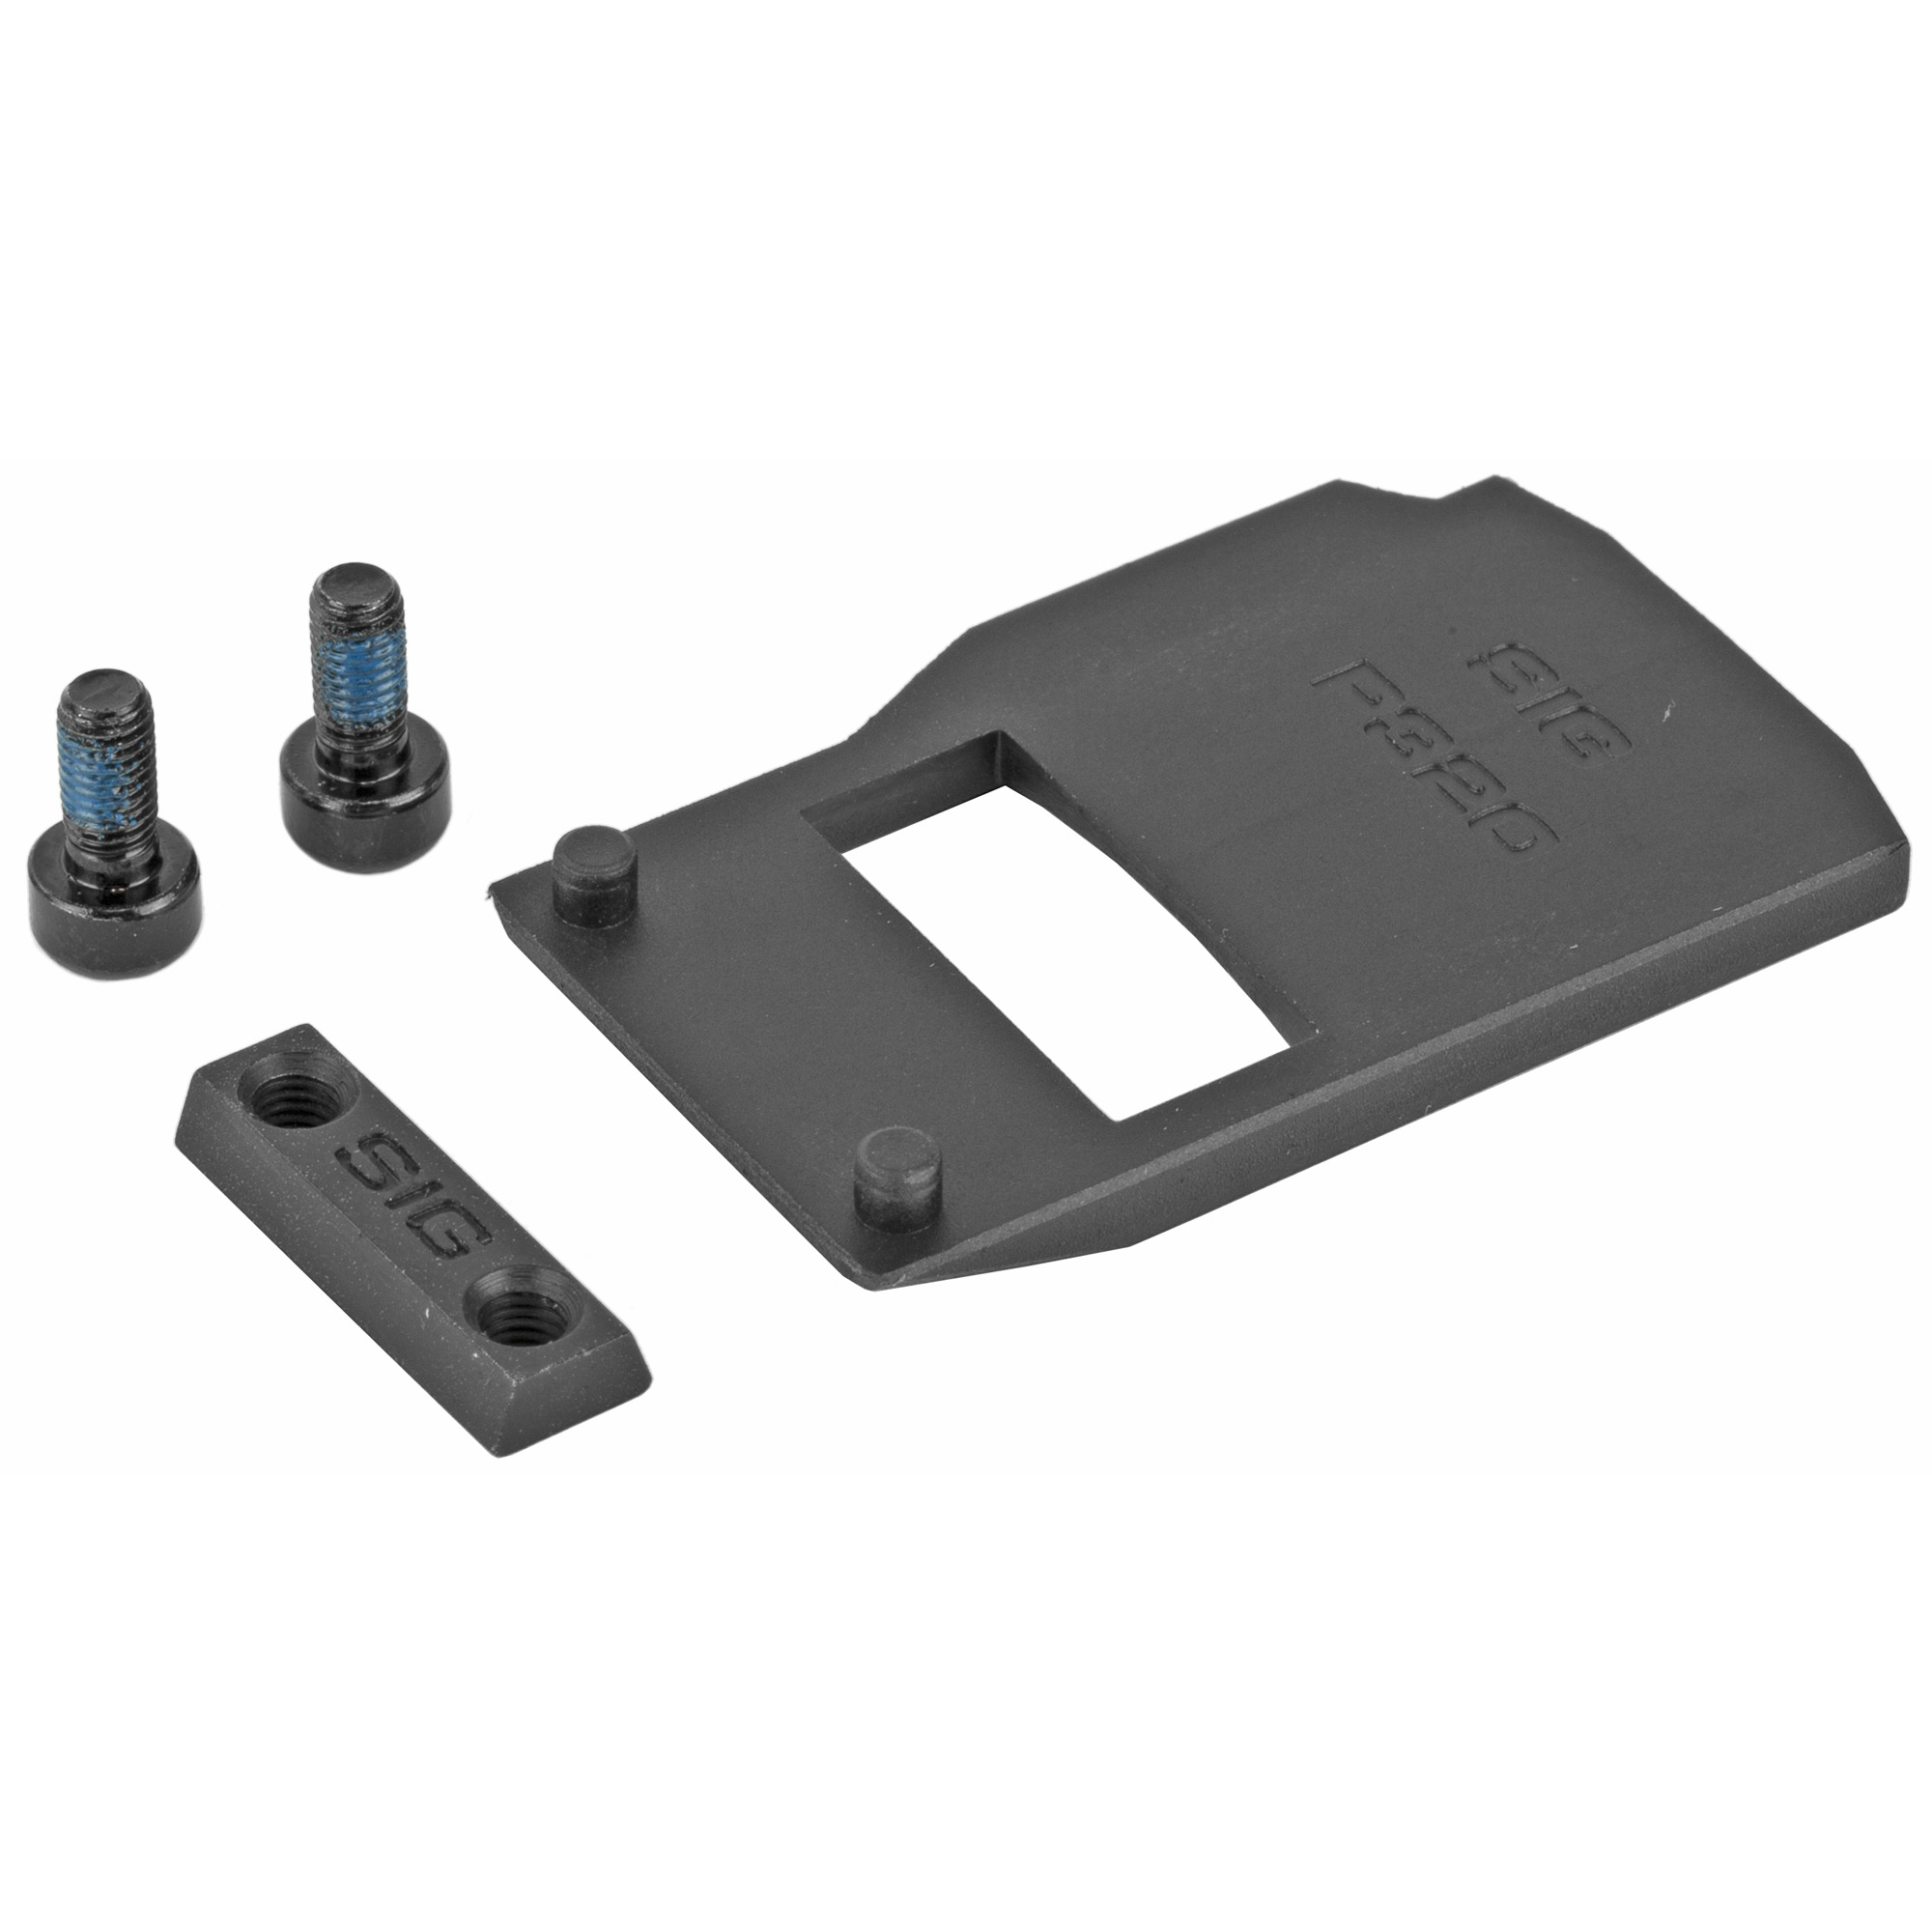 Factory replacement handgun mounting kit specifically for the Romeo1.